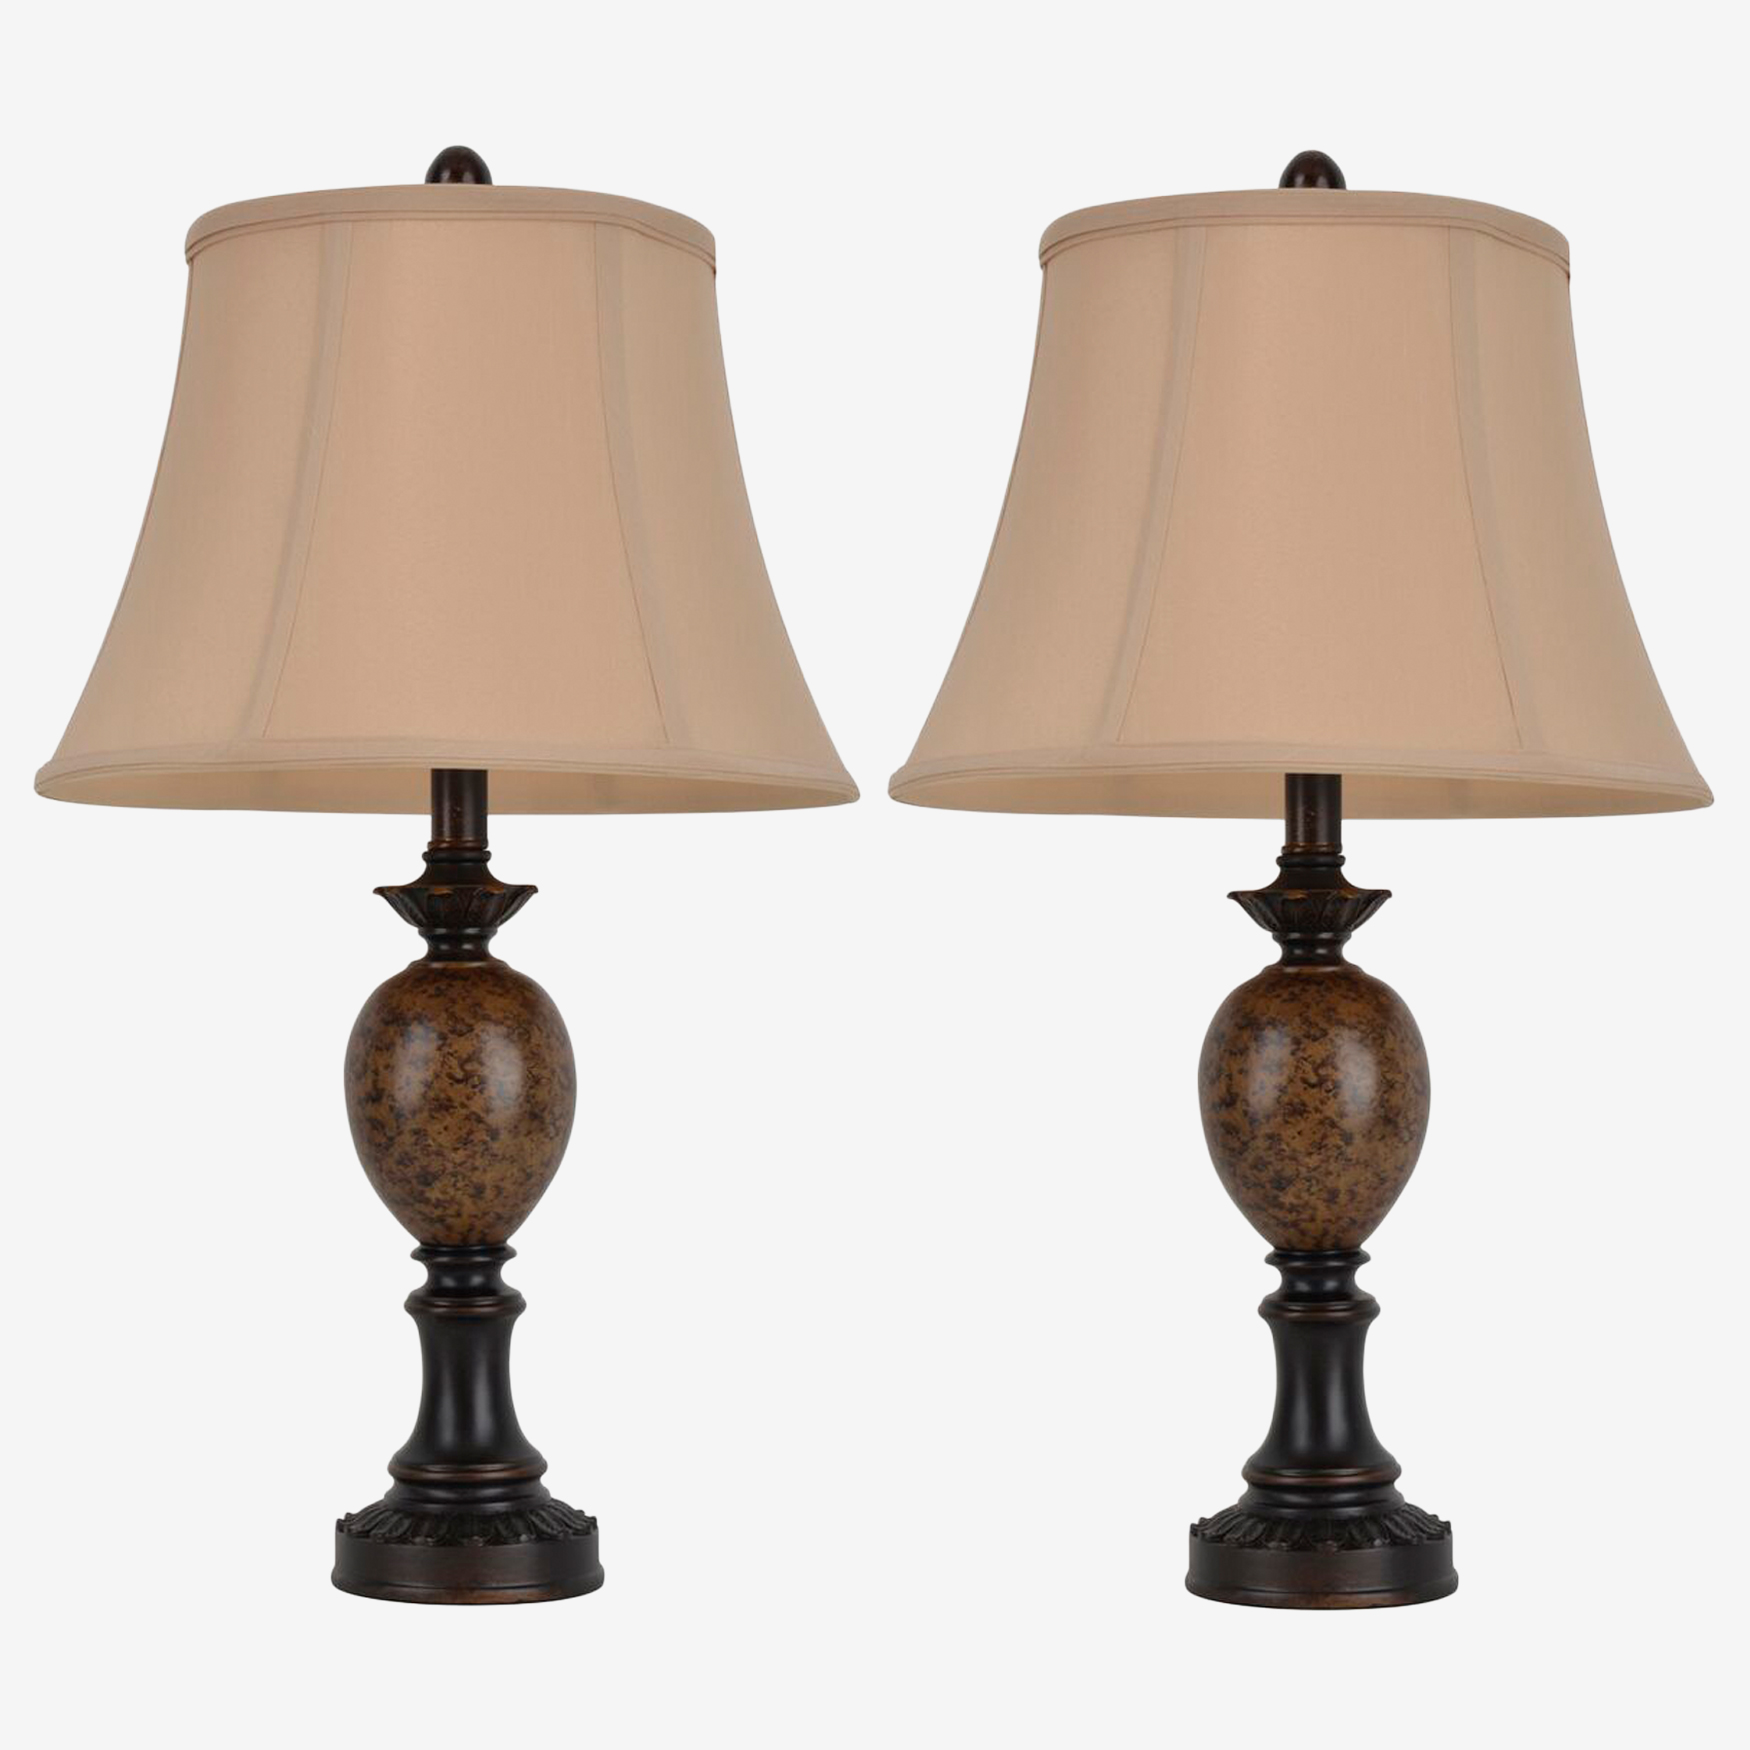 Classic Pair of Table Lamps, BRONZE